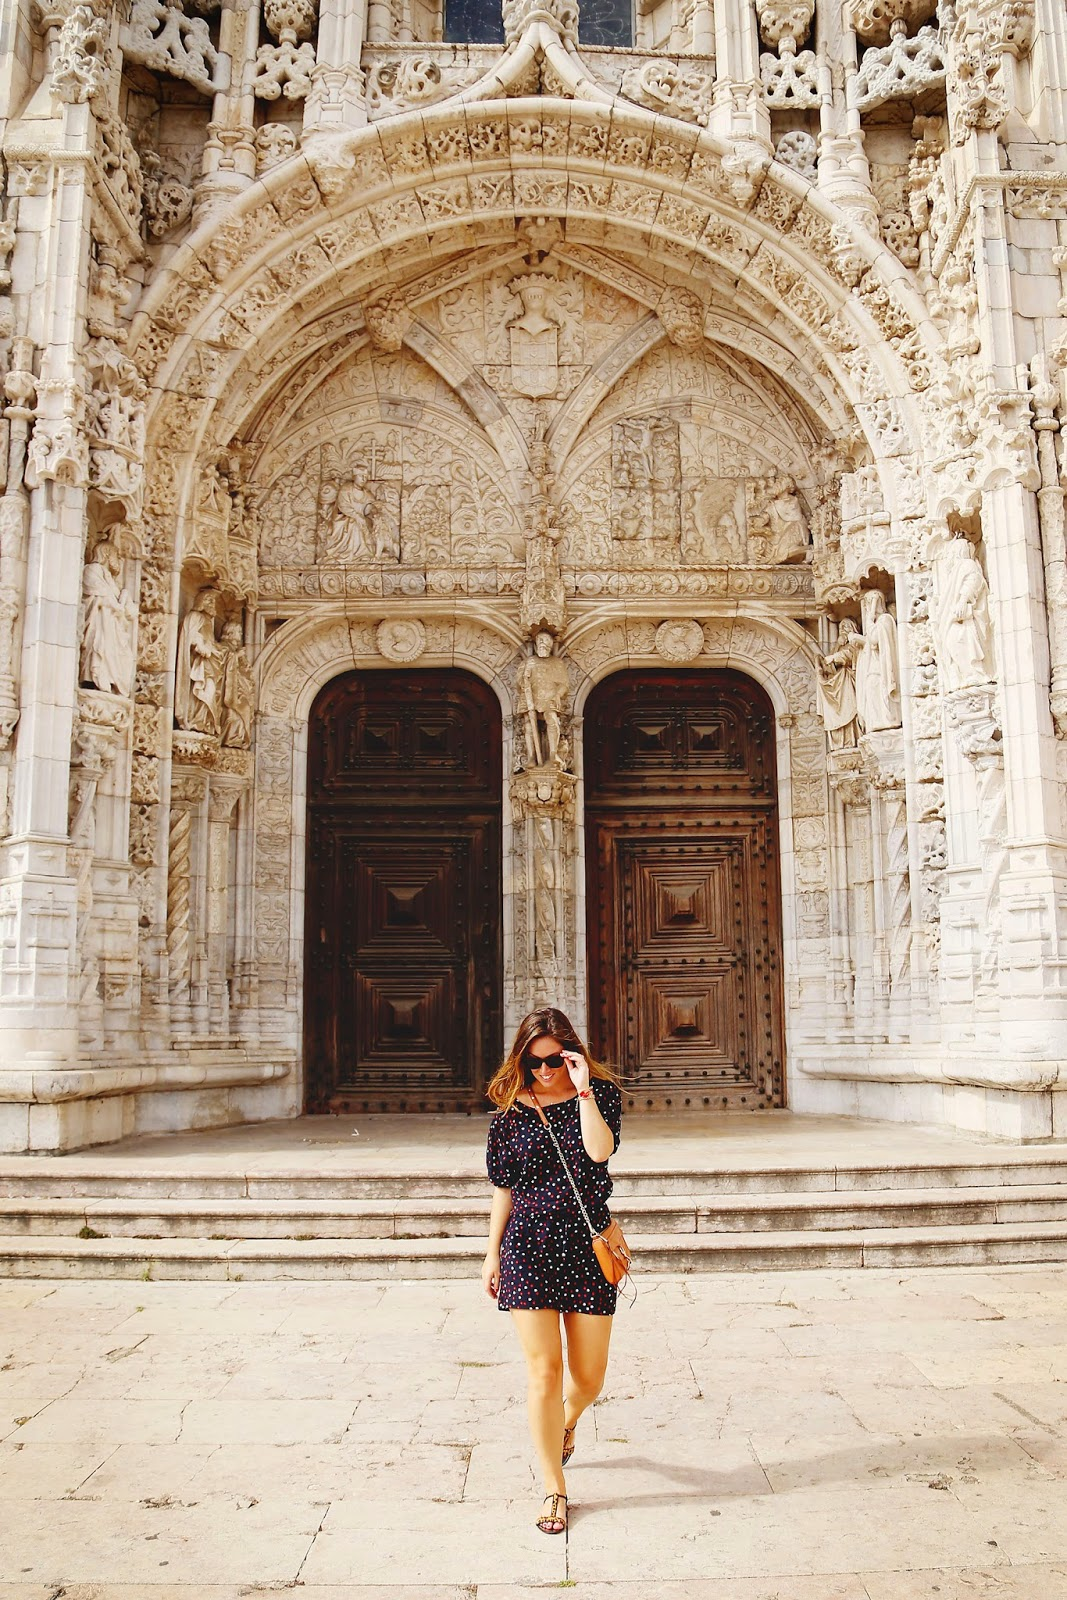 belem lisbon how to get there